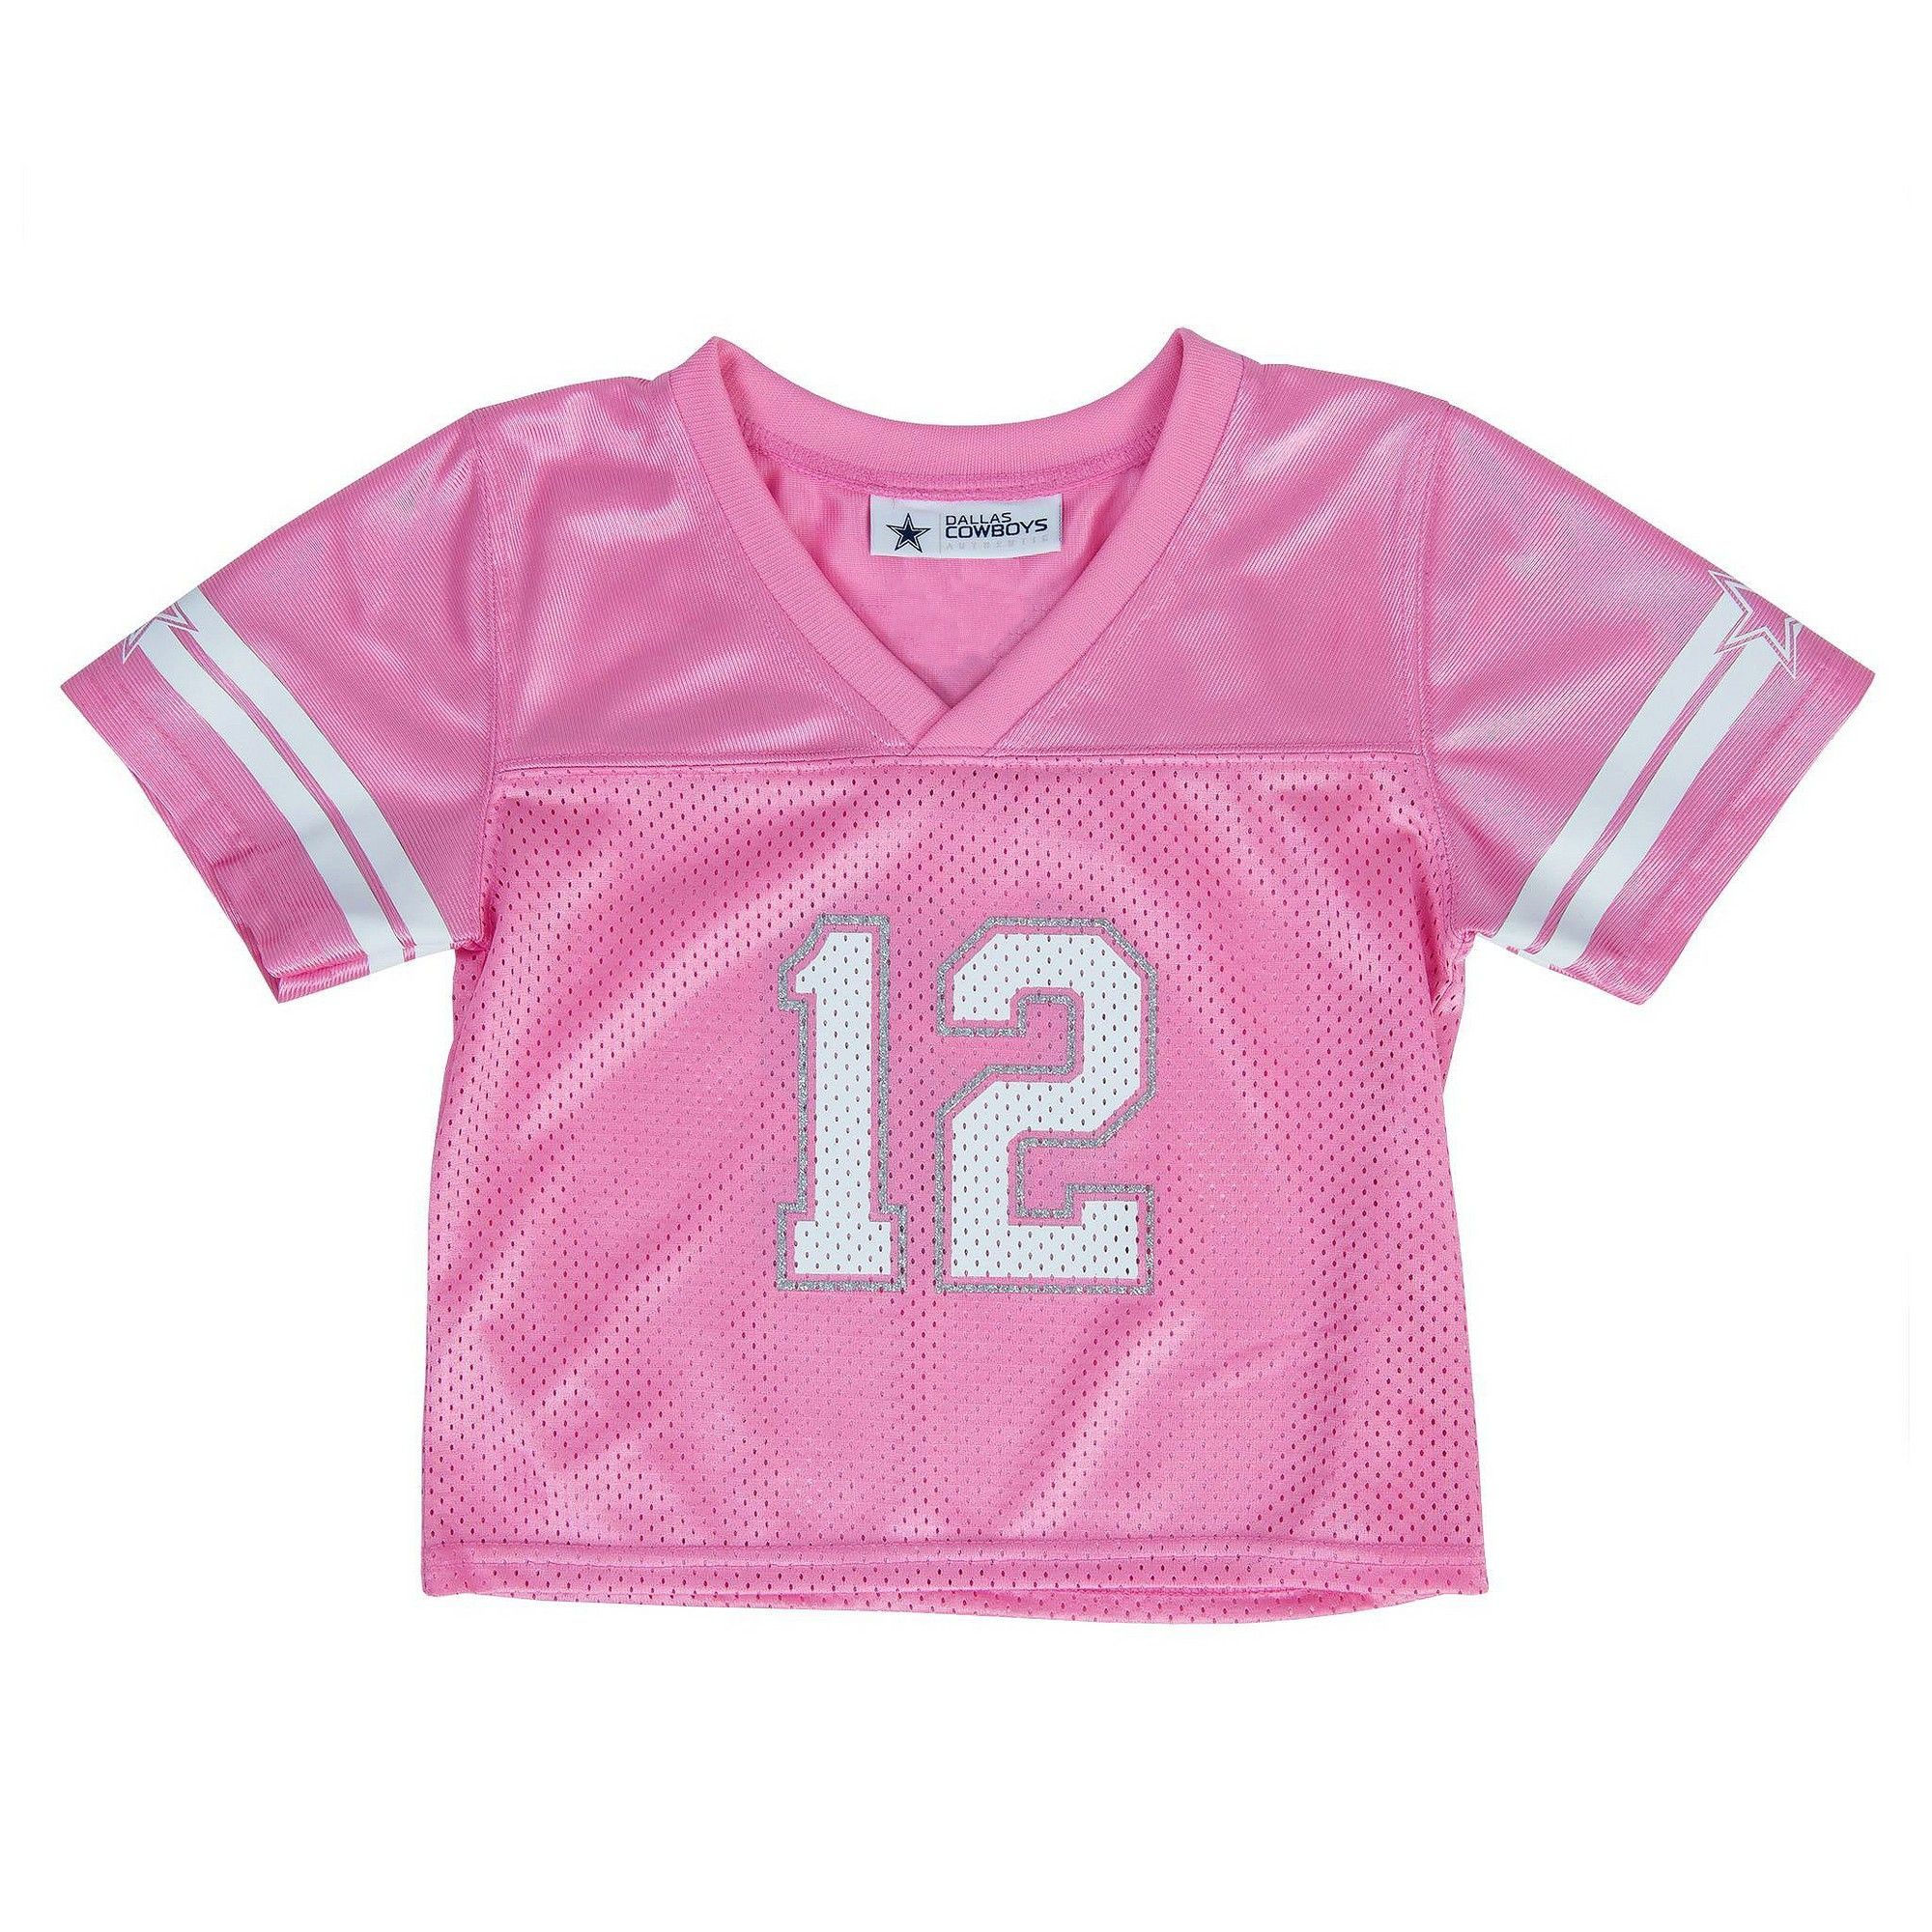 low priced b5cb2 83ac1 Dallas Cowboys Toddler Girls' Jersey 4T | Products | Toddler ...